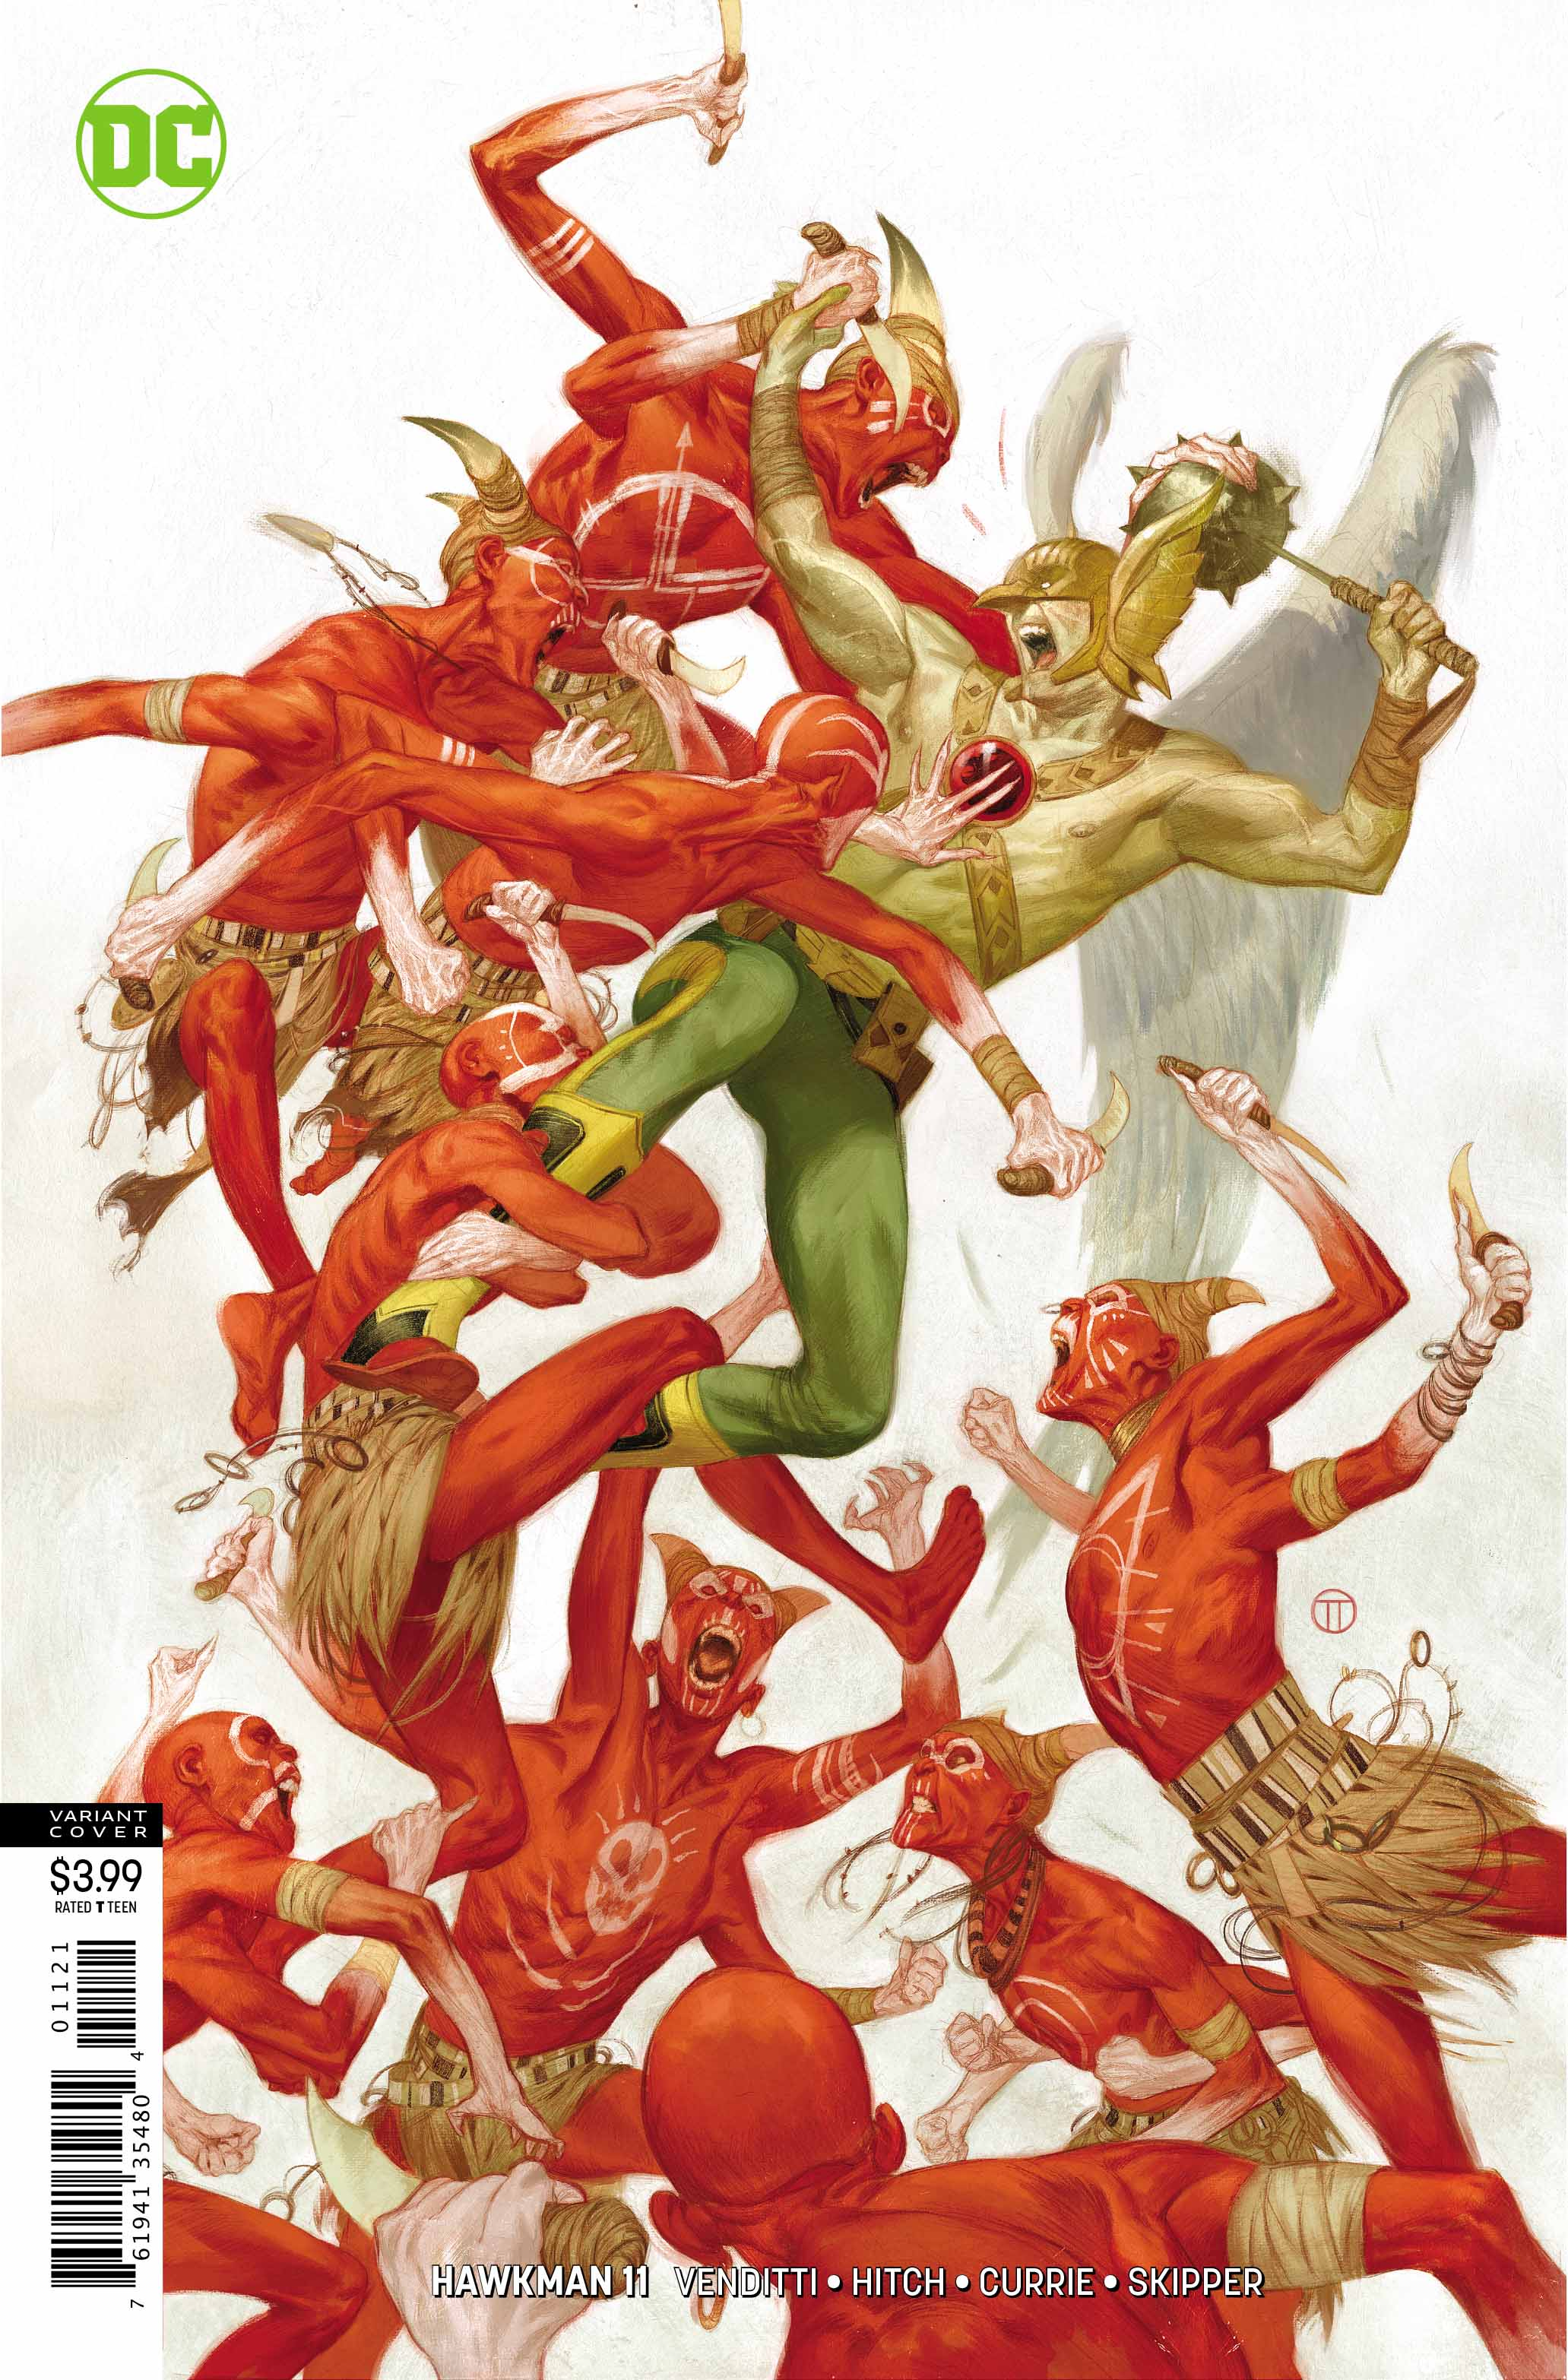 Hawkman #11 review: One for all